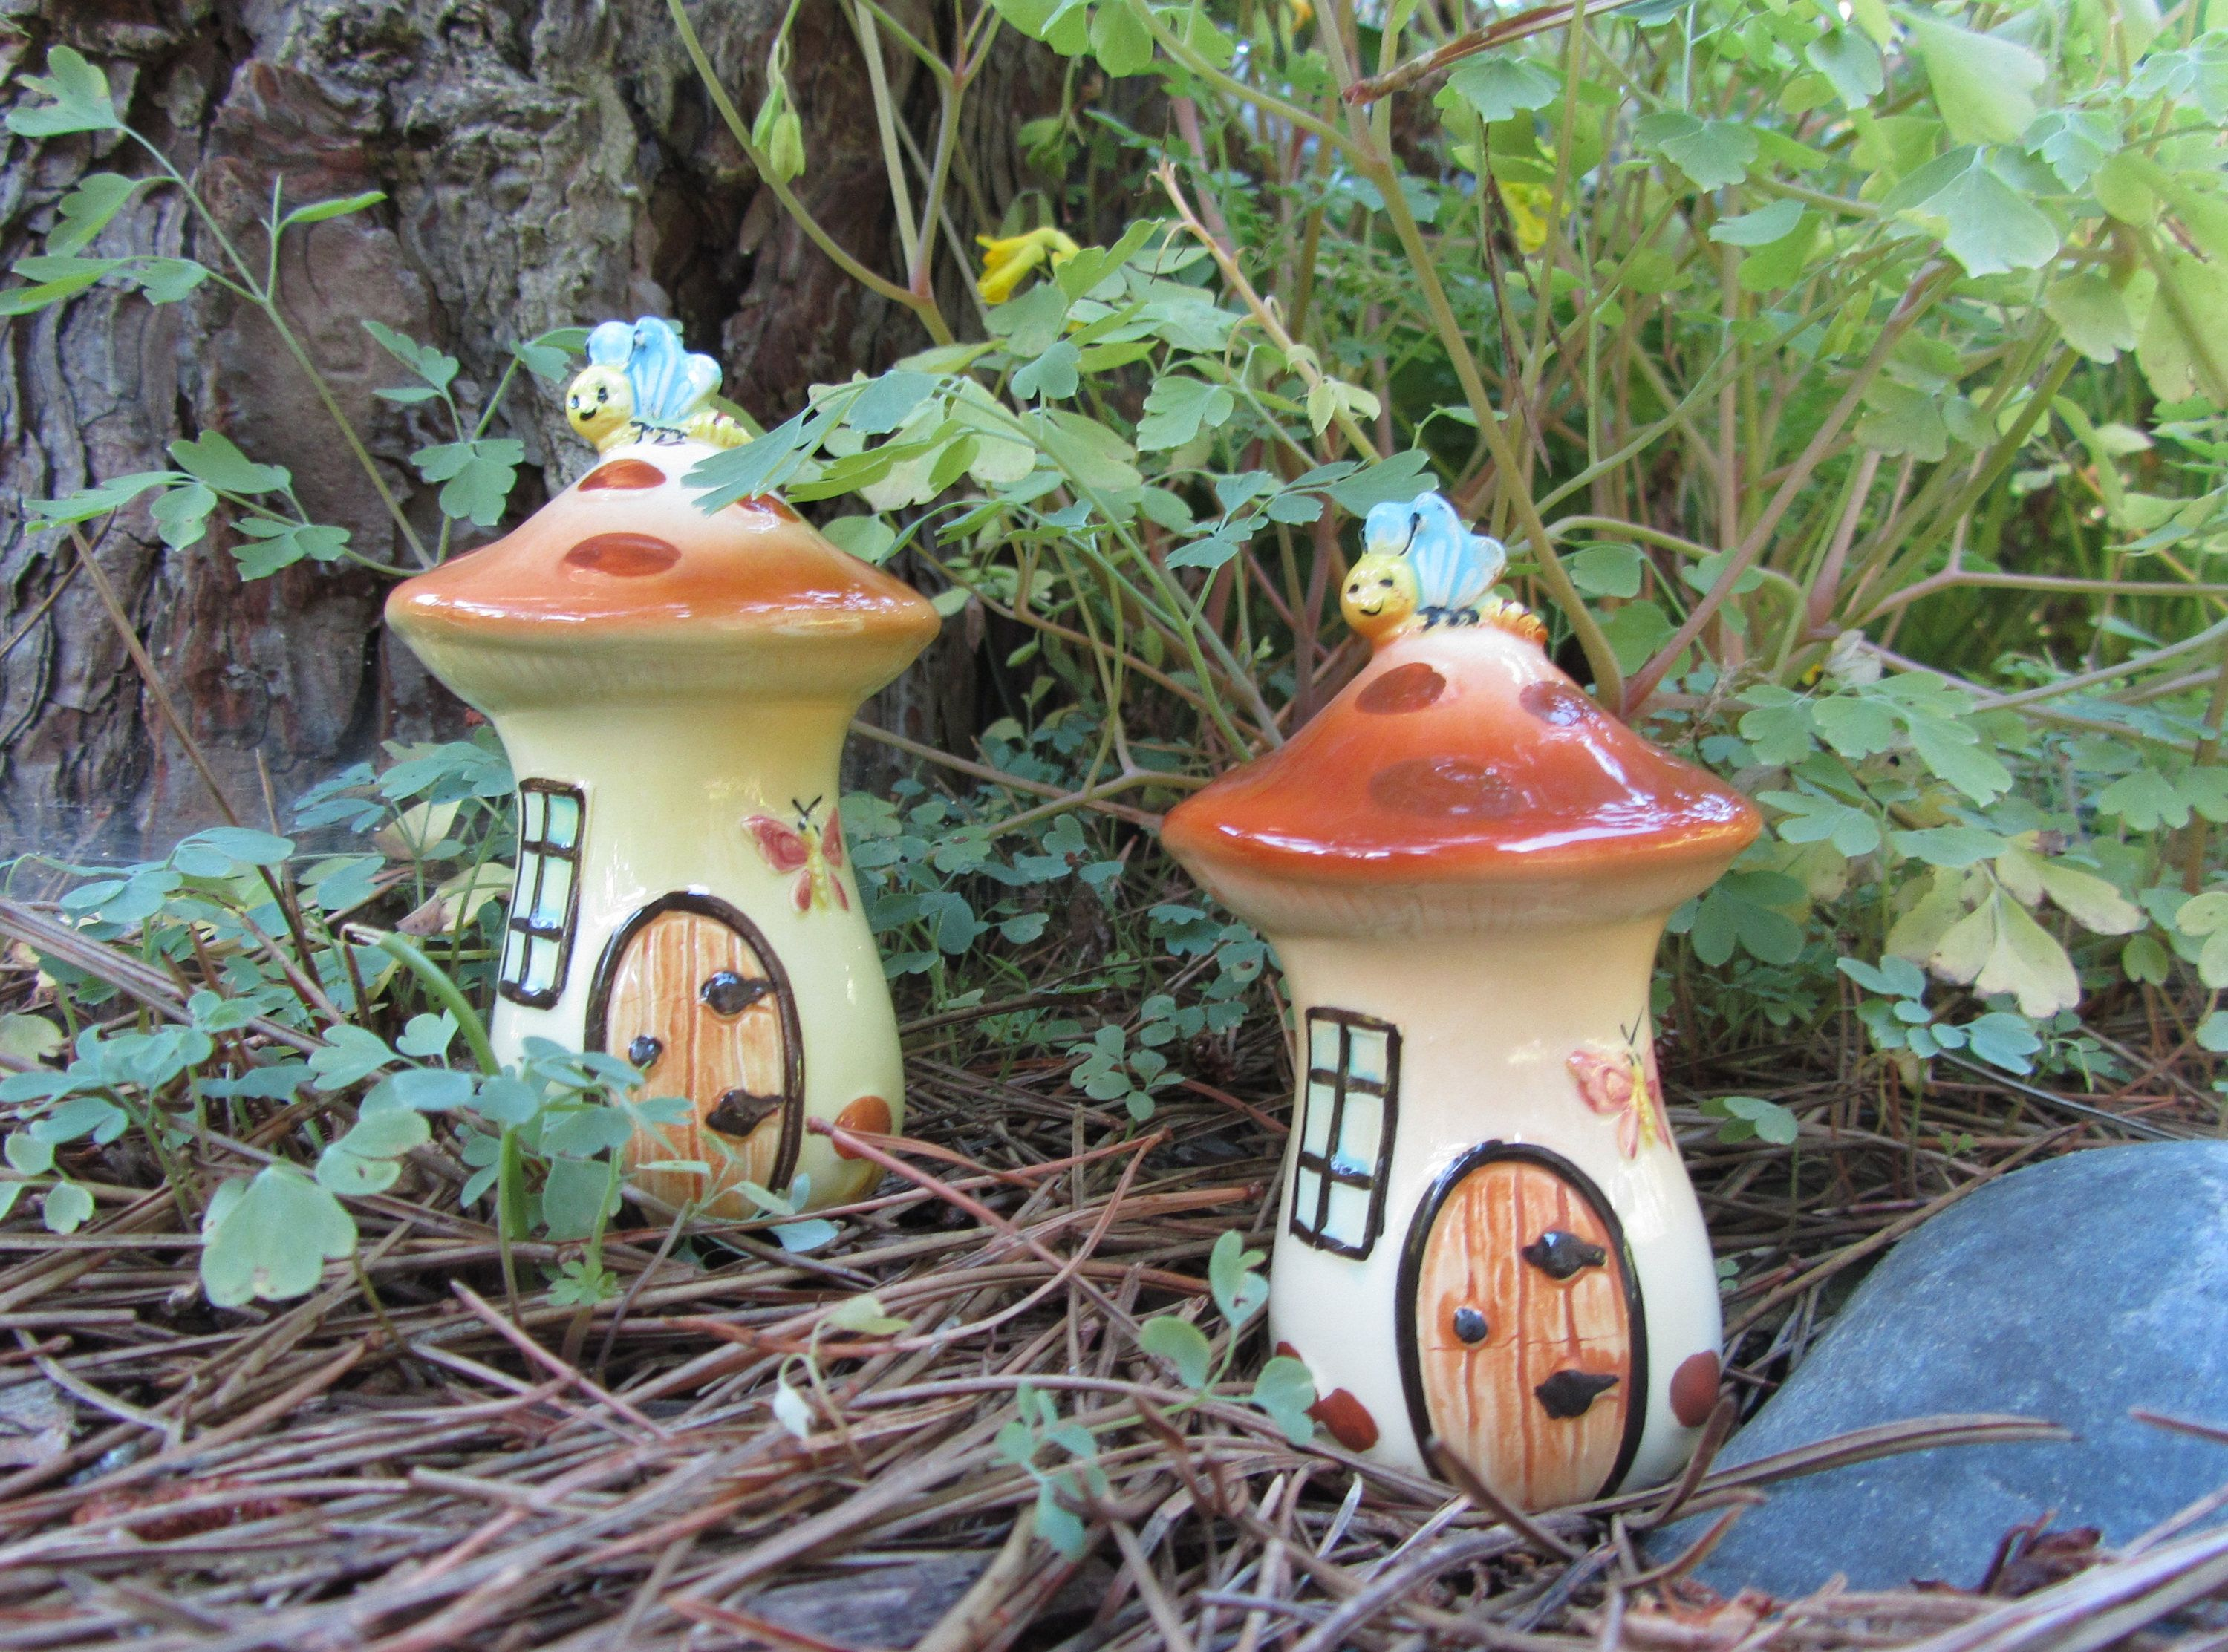 Medium Of Mushroom Fairy Garden